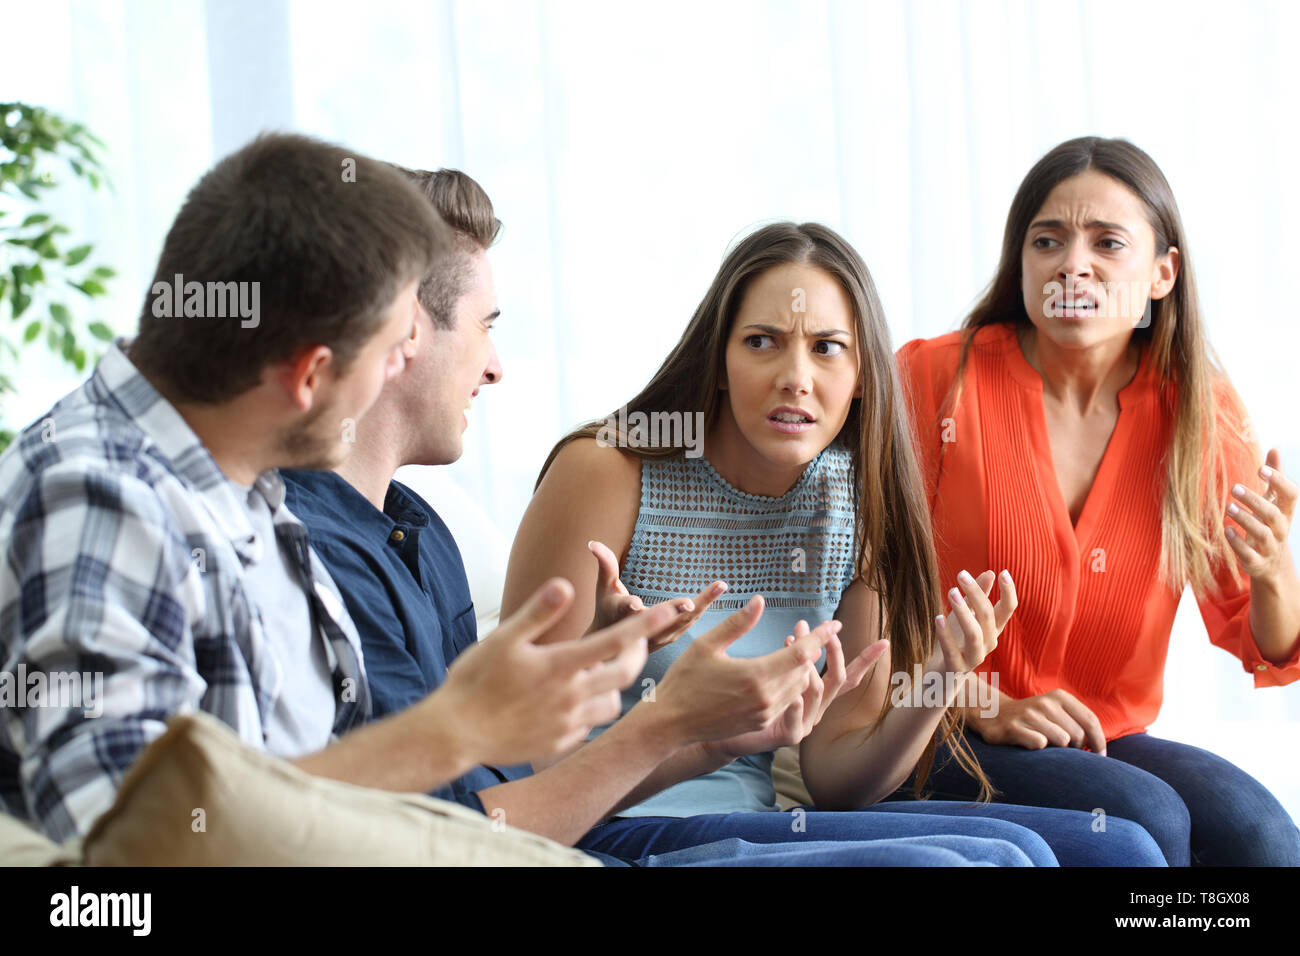 Four angry friends fighting sitting on a couch at home - Stock Image